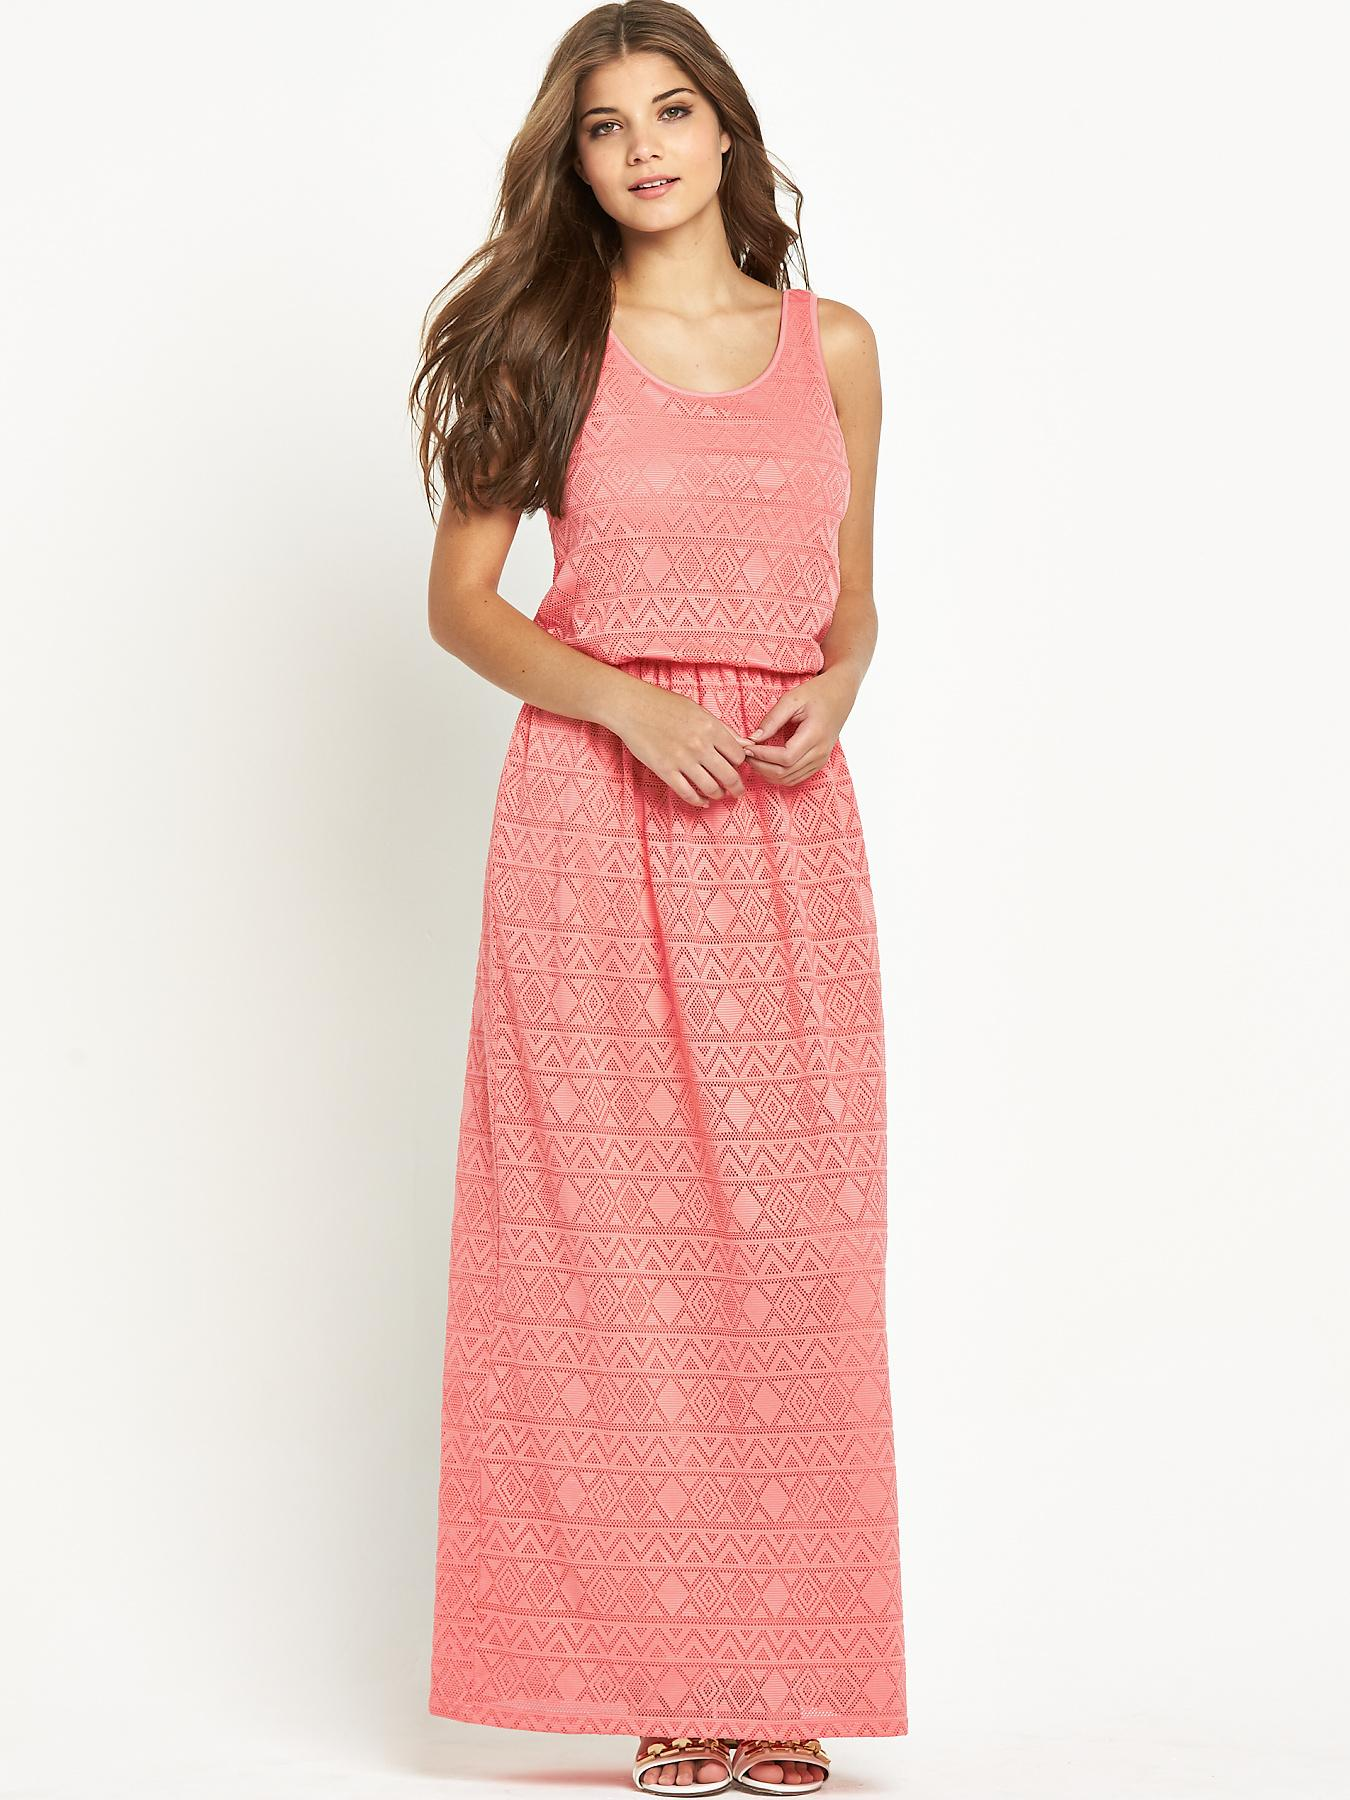 Club L Aztec Lace Maxi Dress